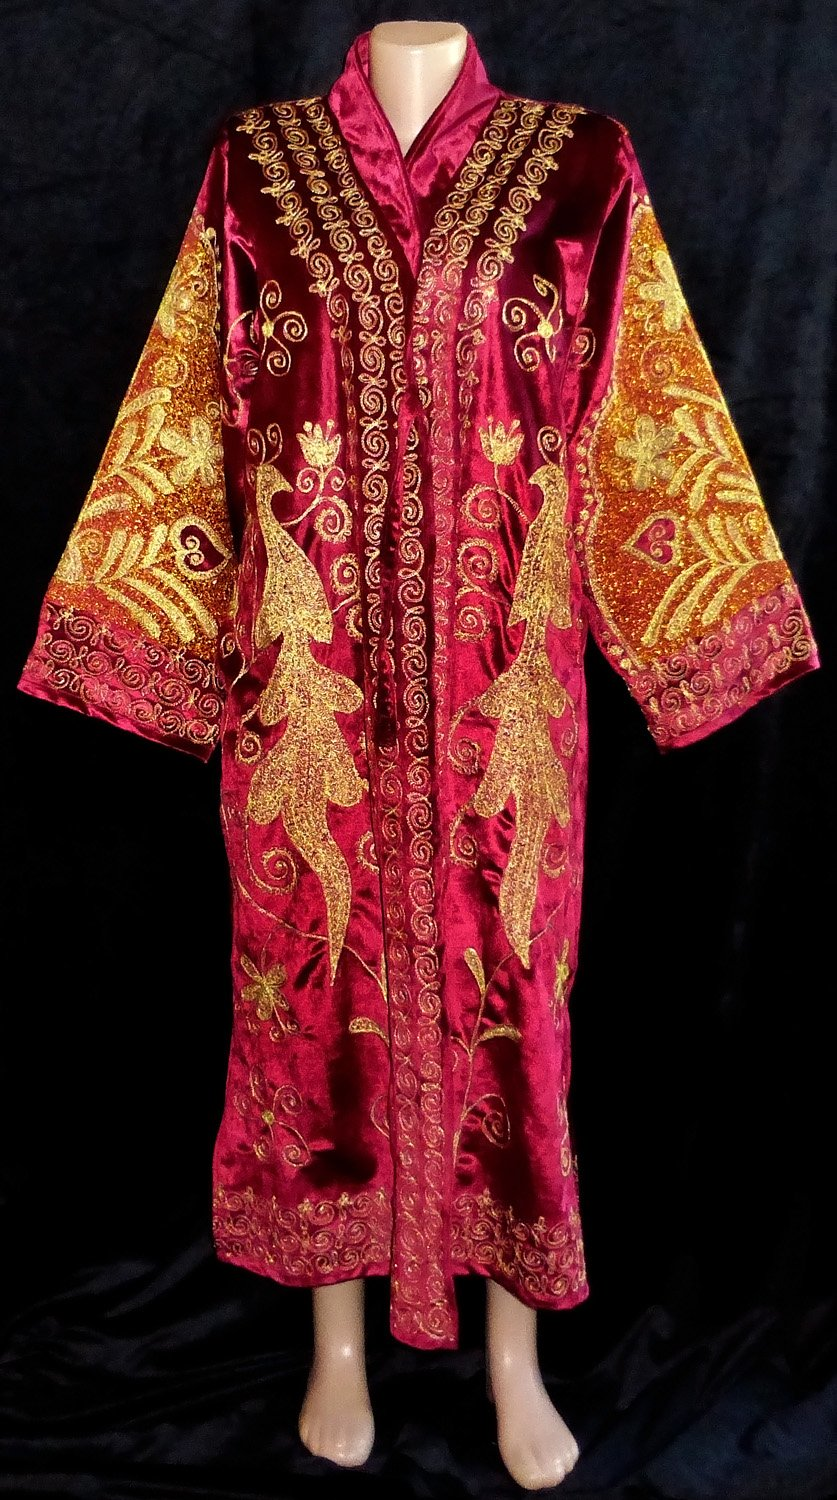 TRADITIONAL BUKHARA OUTWEAR COSTUME ROBE JACKET SILK GOLD EMBROIDERED A11726